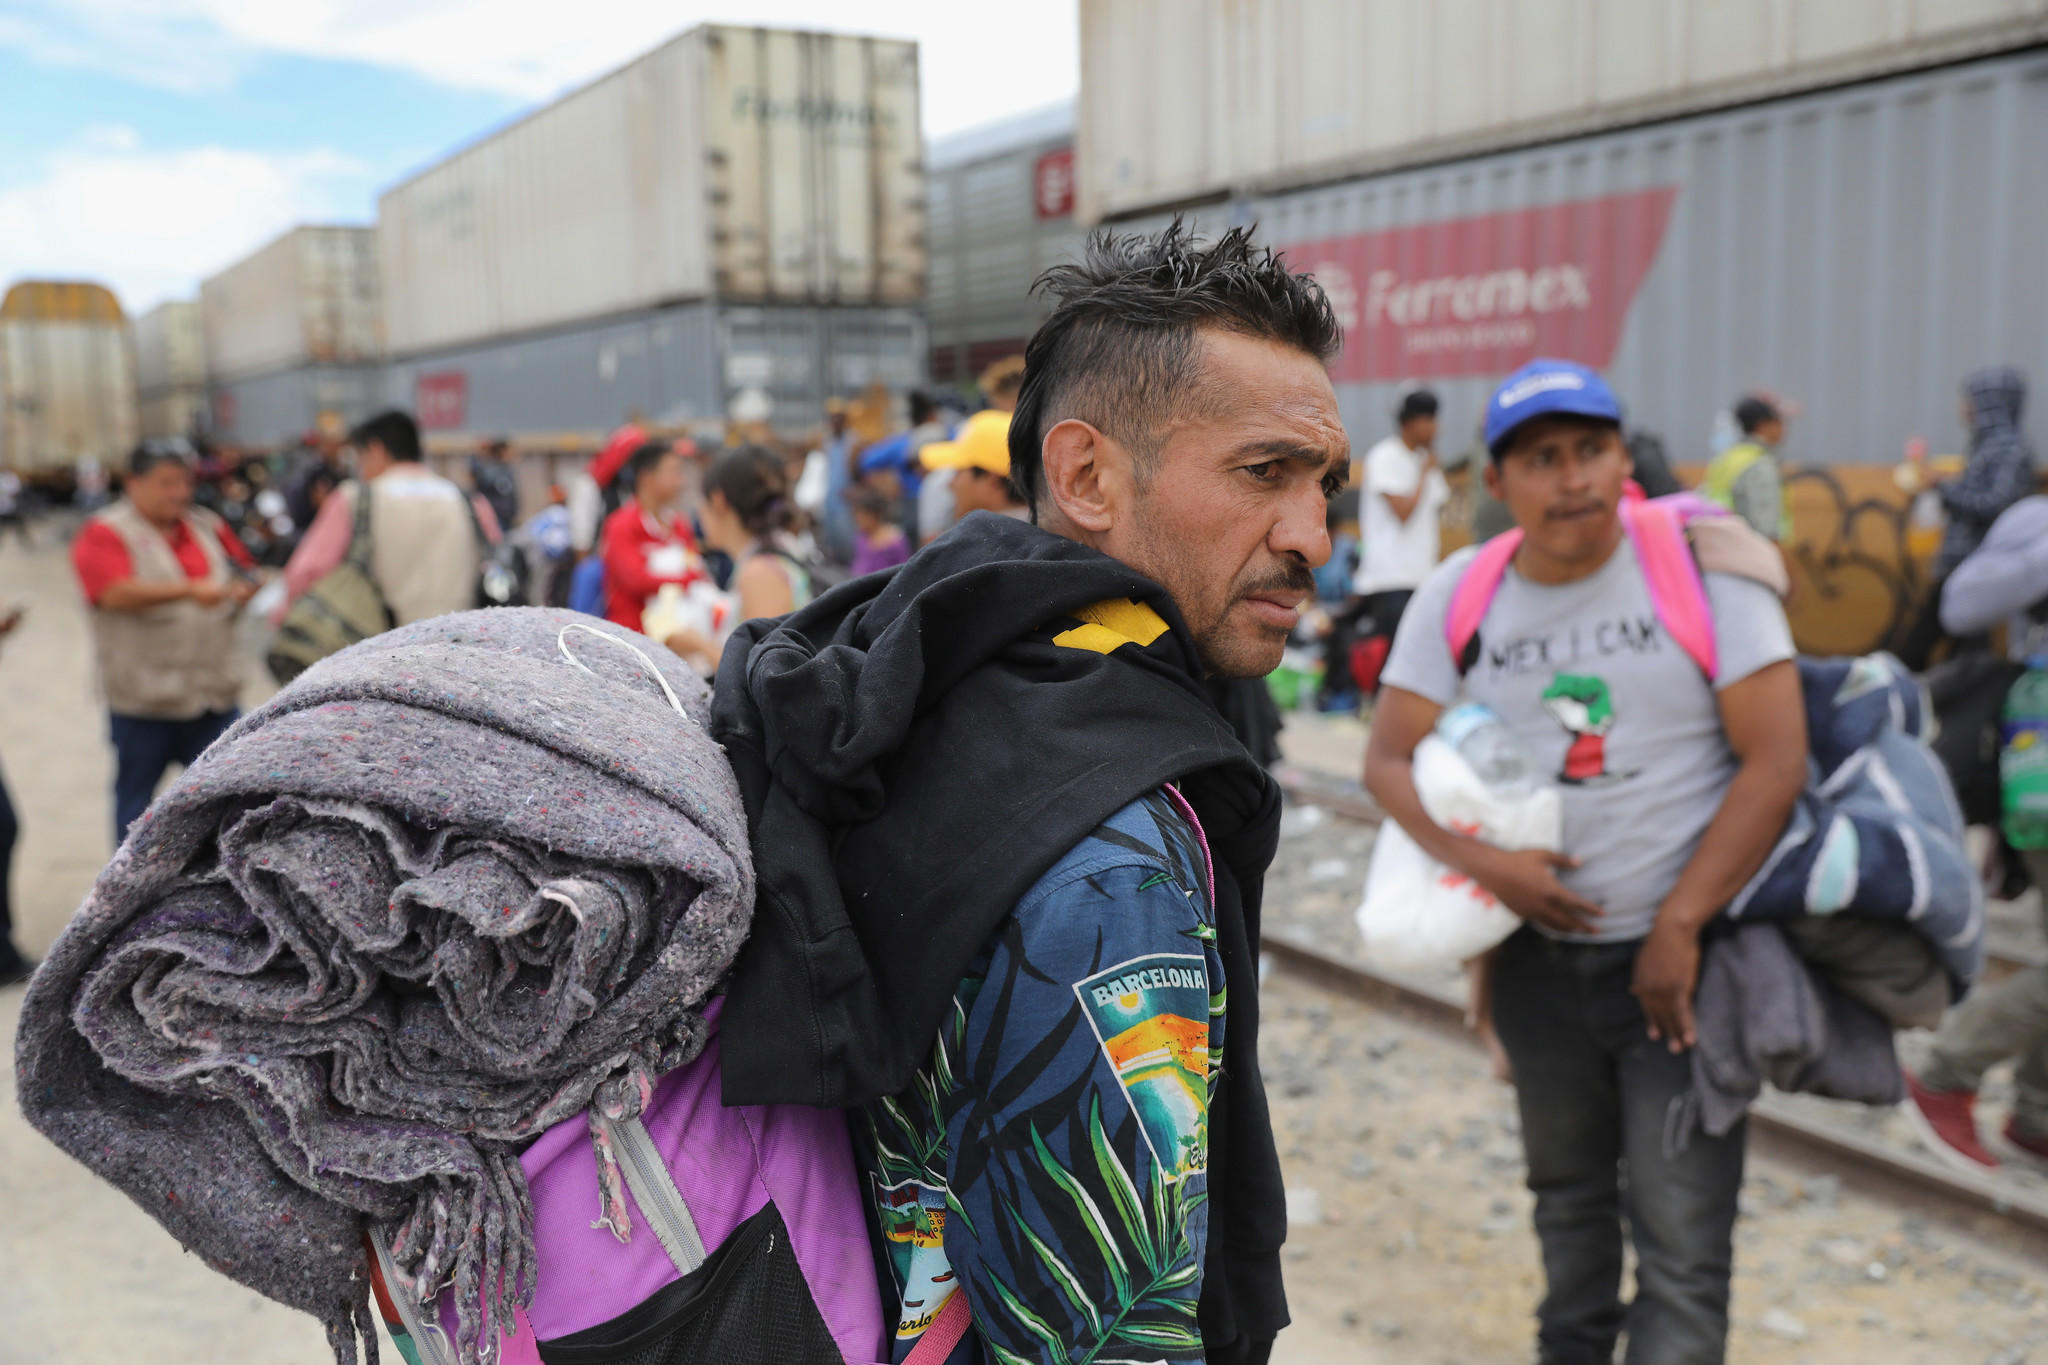 Remnants of Mexico migrant caravan move closer to USA border